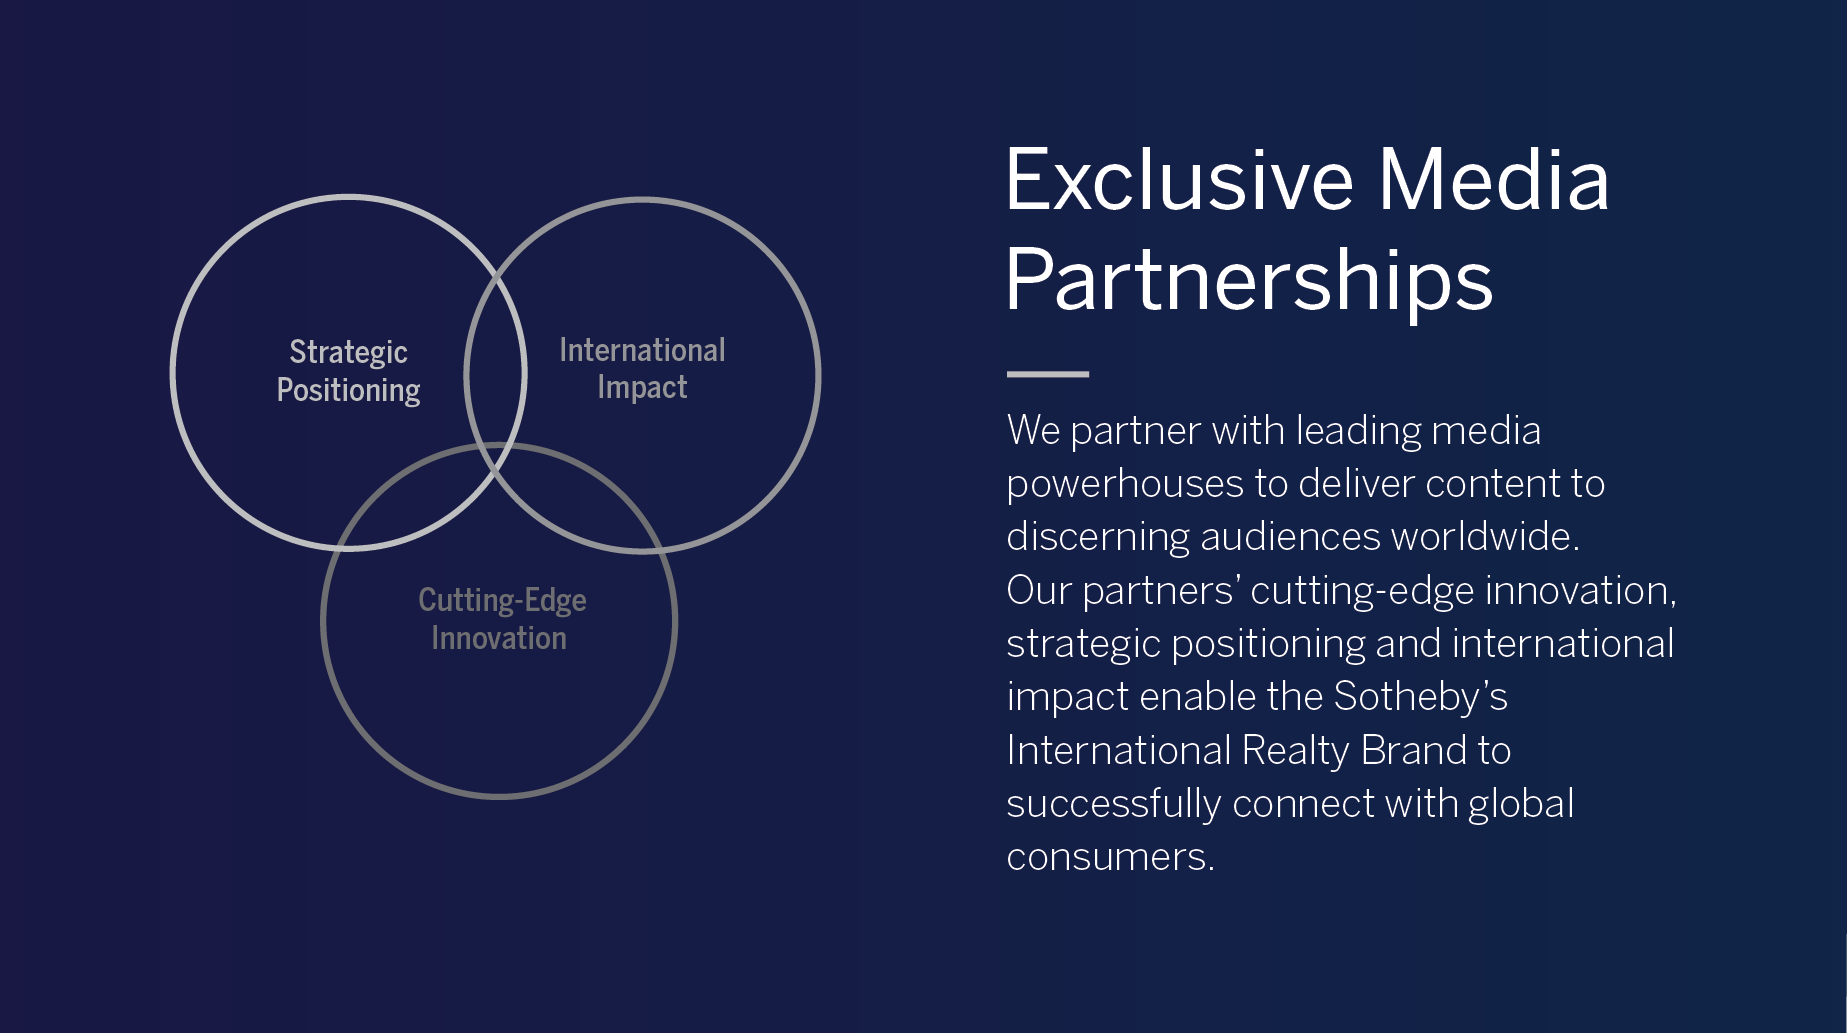 Exclusive Media Partnerships